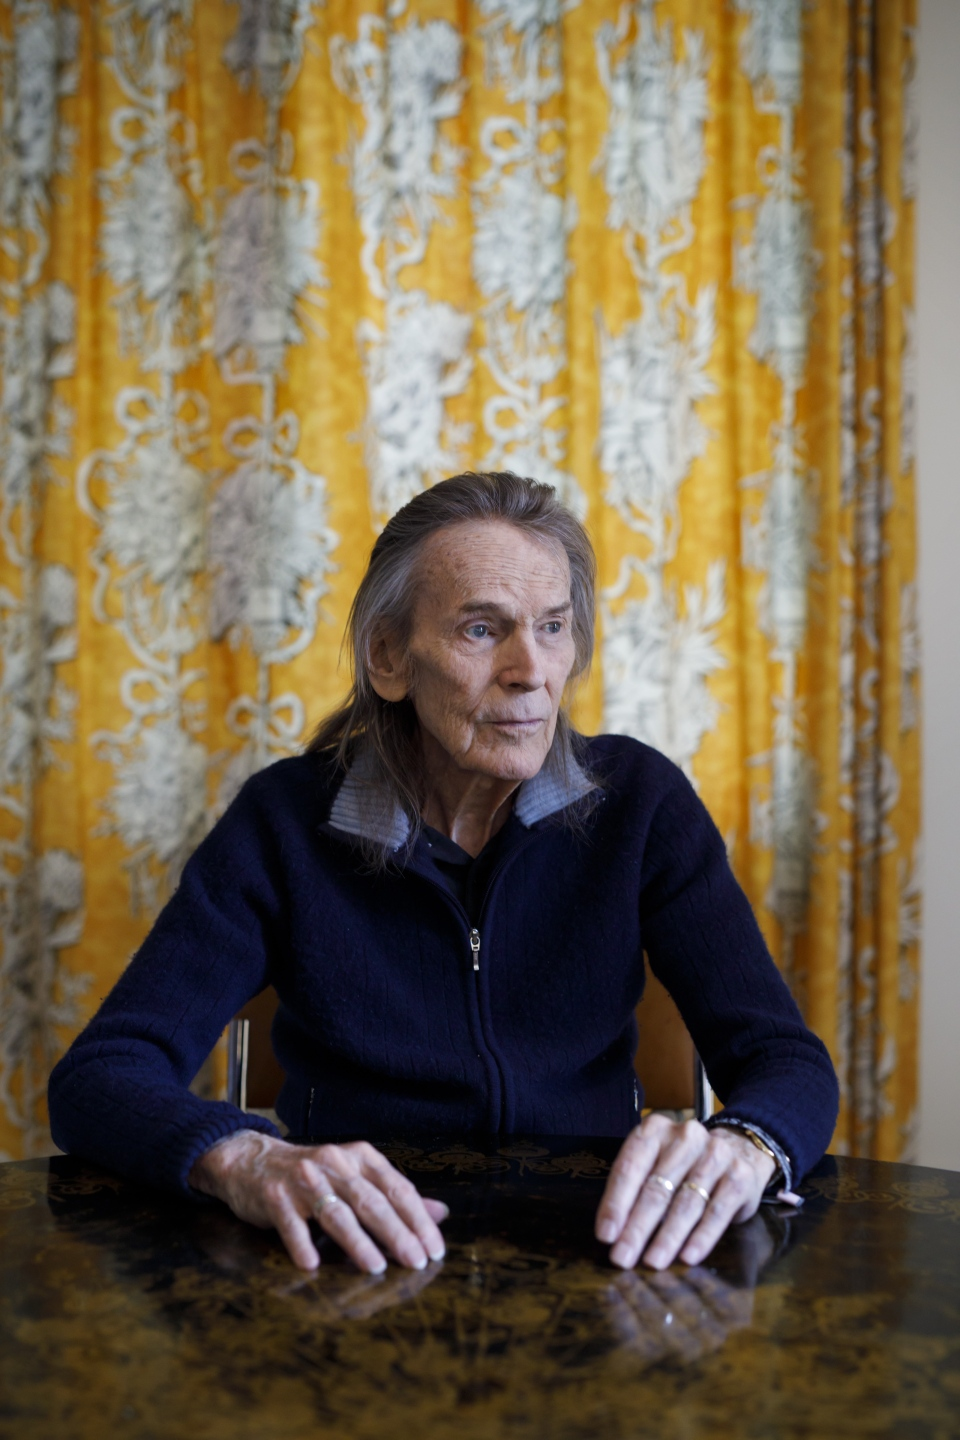 Canadian musician Gordon Lightfoot in his Toronto home on Thursday, April 25, 2019. THE CANADIAN PRESS/Cole Burston